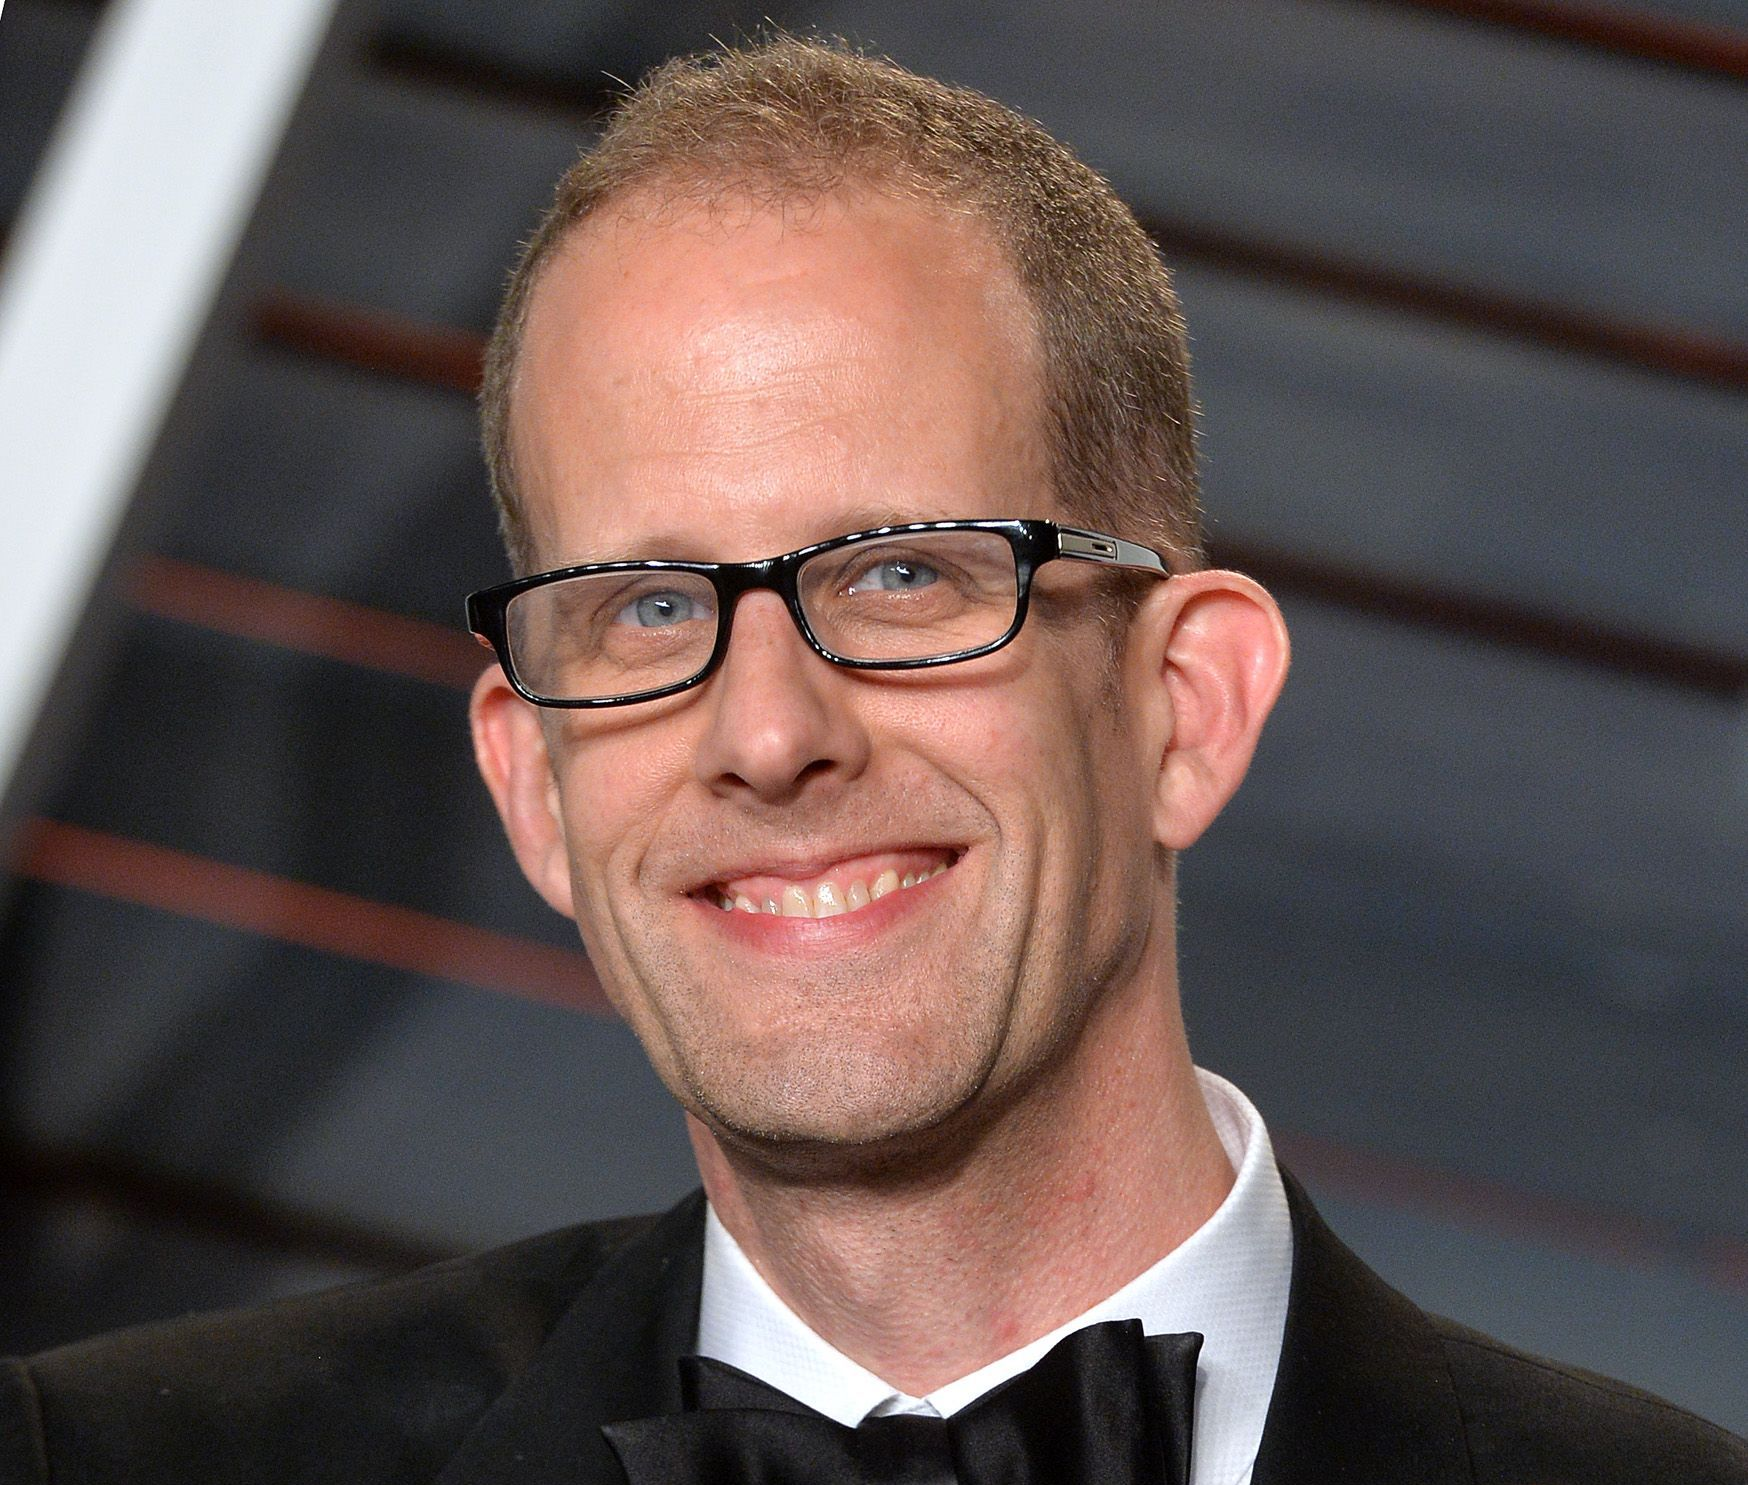 Pete Docter2016 Vanity Fair Oscar Party, Beverly Hills, Los Angeles, USA - 28 Feb 2016